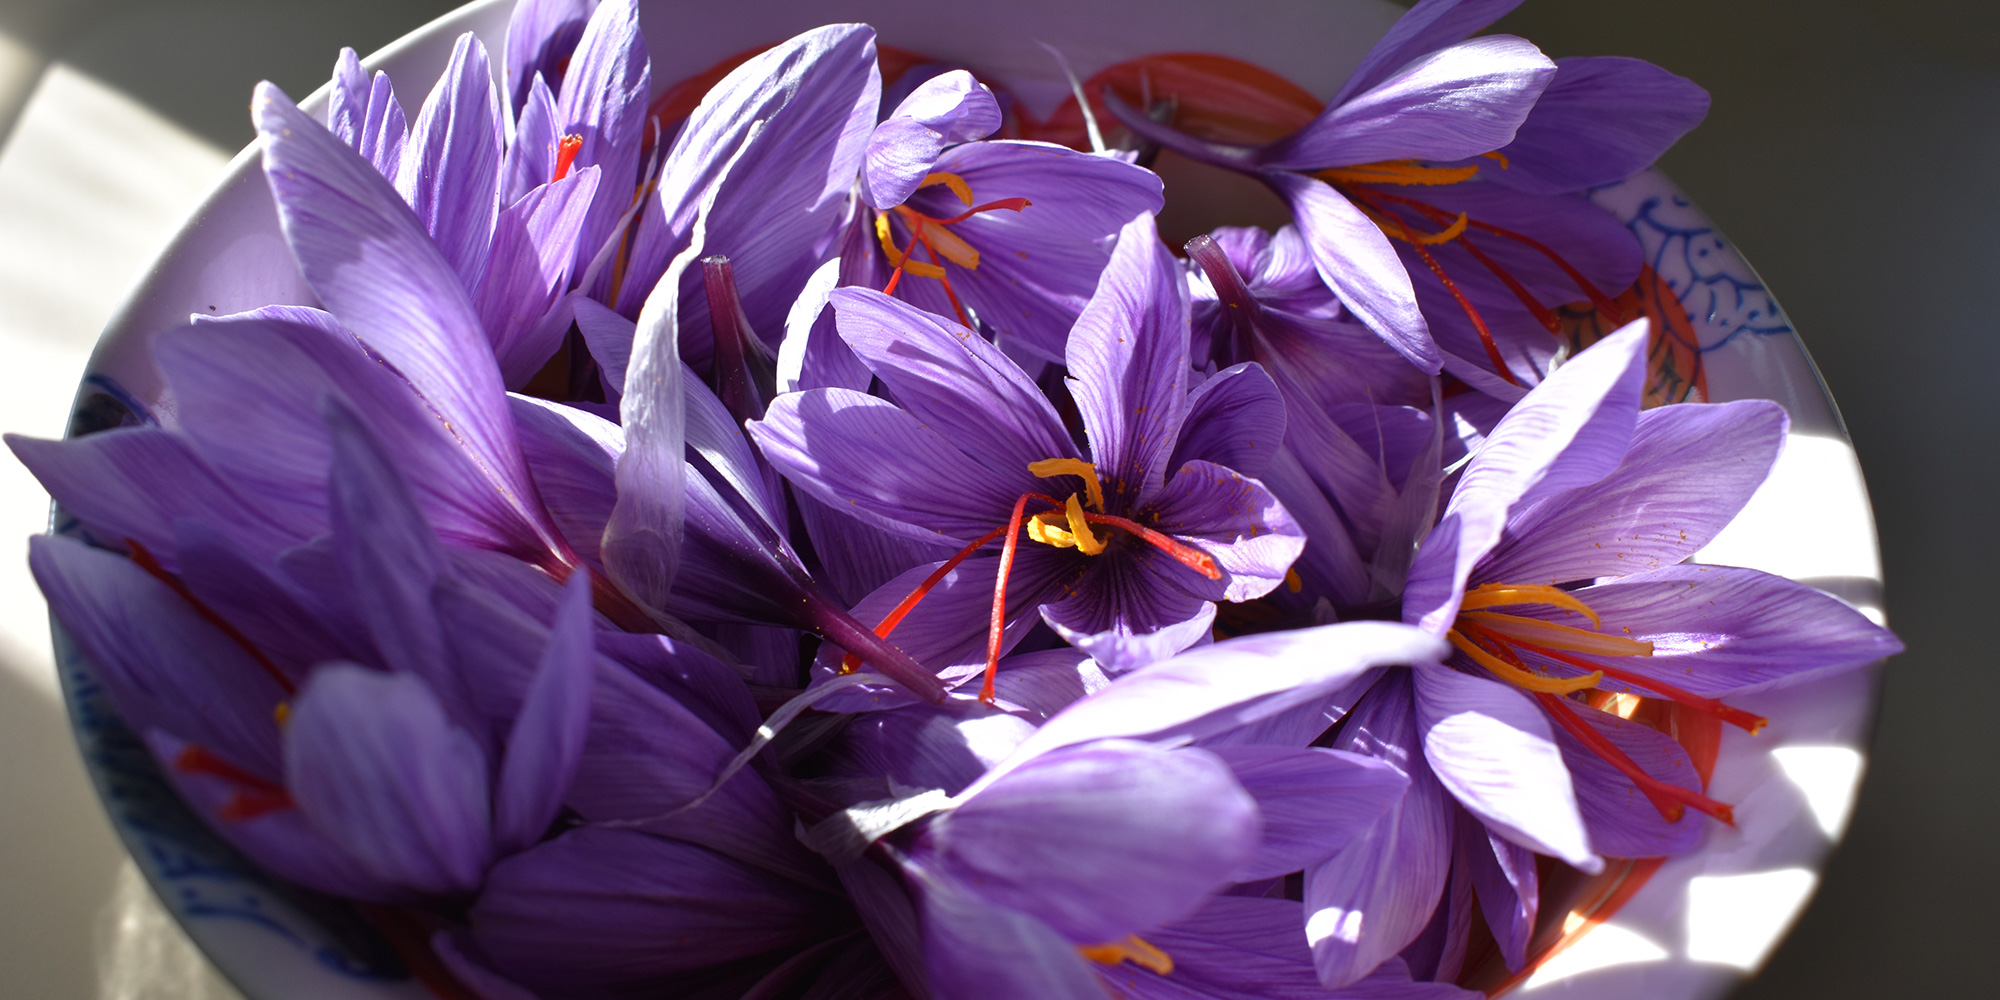 Harvested purple saffron crocus flowers